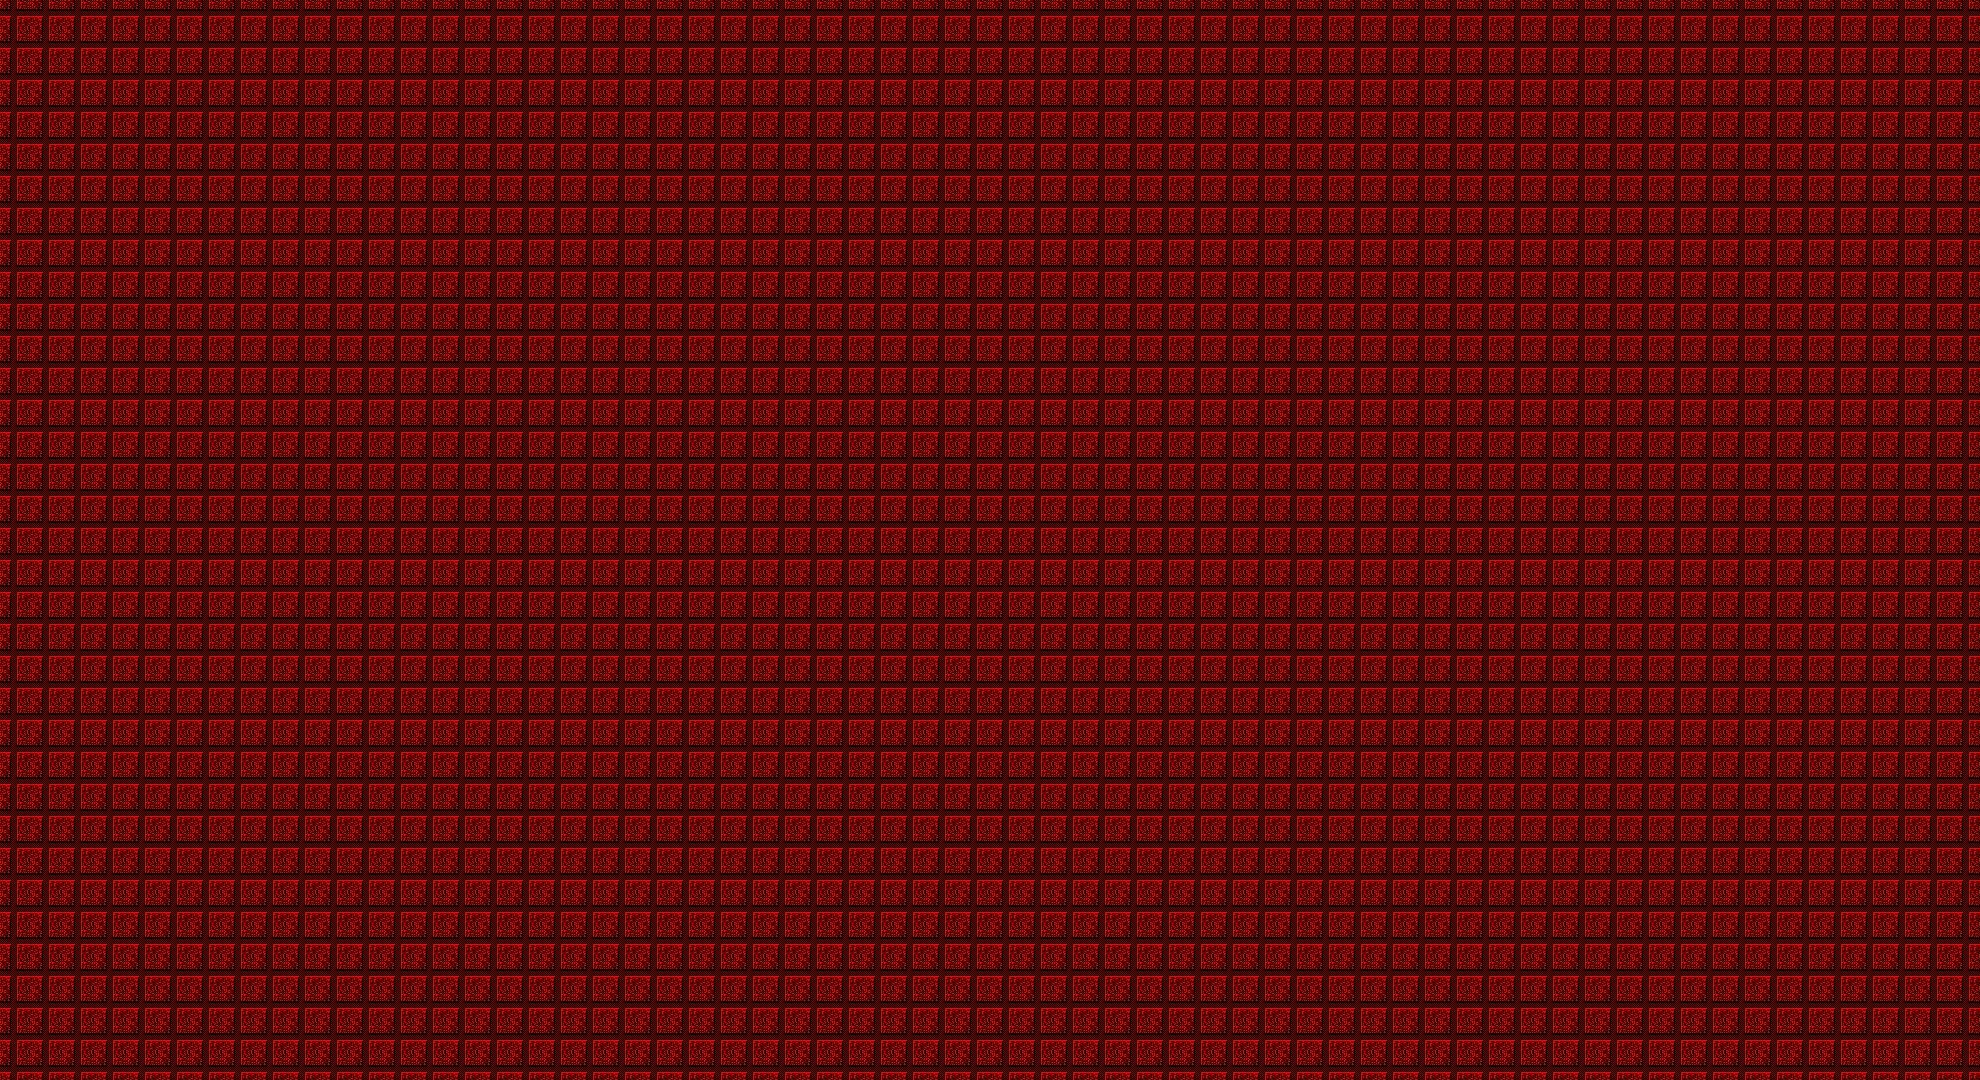 Red Picture Background Hd 1980x1080 1292 Kb Red Pictures Laptop Windows Windows Wallpaper